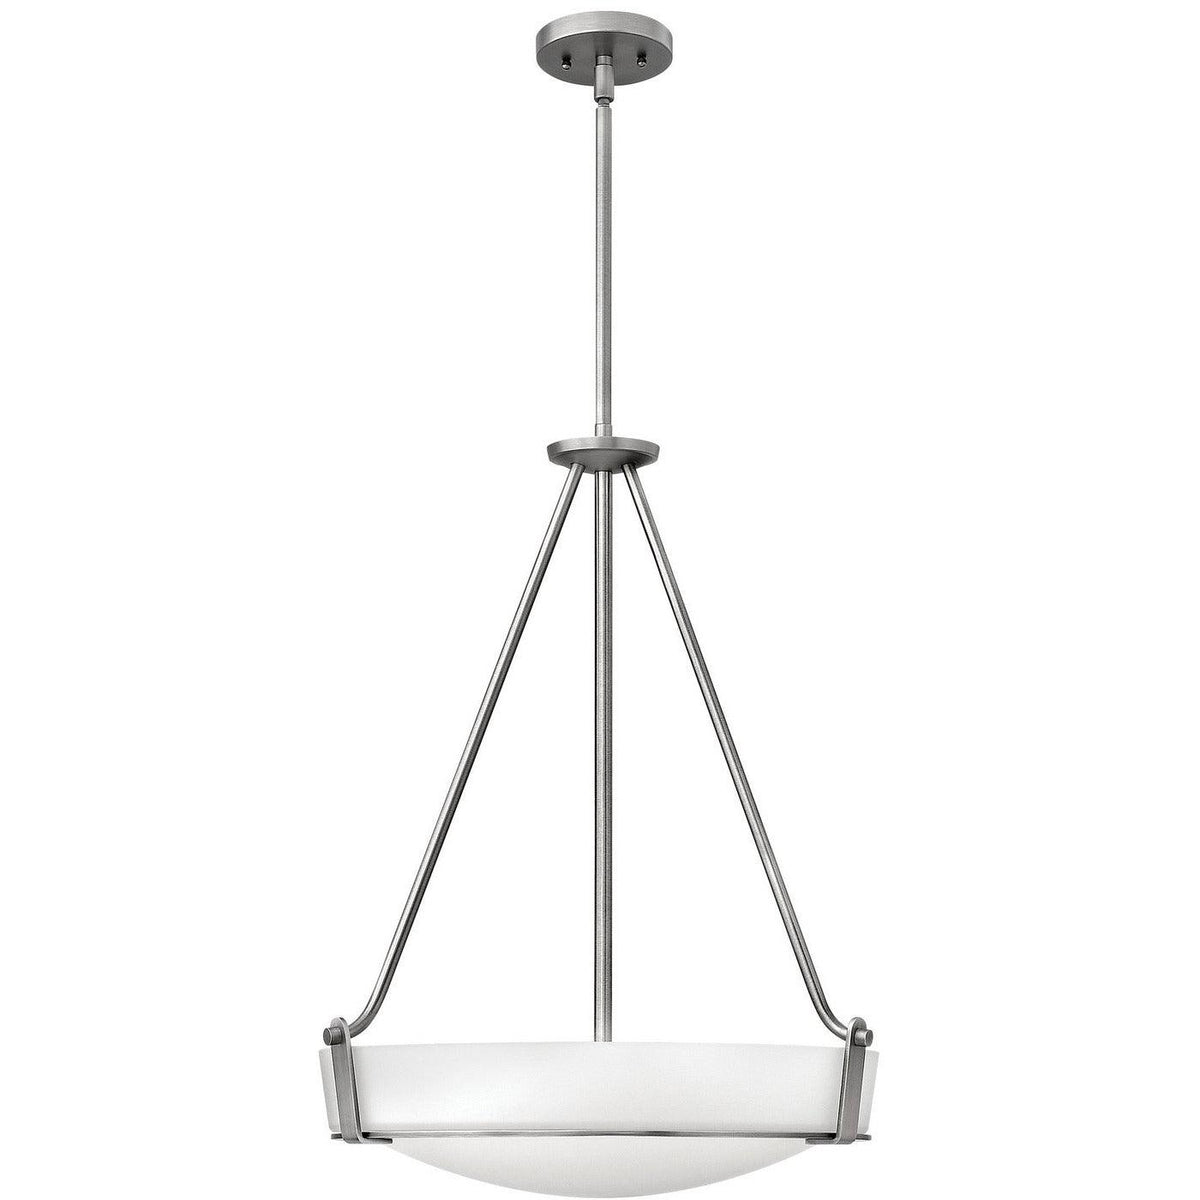 Hinkley Canada - 3222AN-LED - LED Foyer Pendant - Hathaway - Antique Nickel